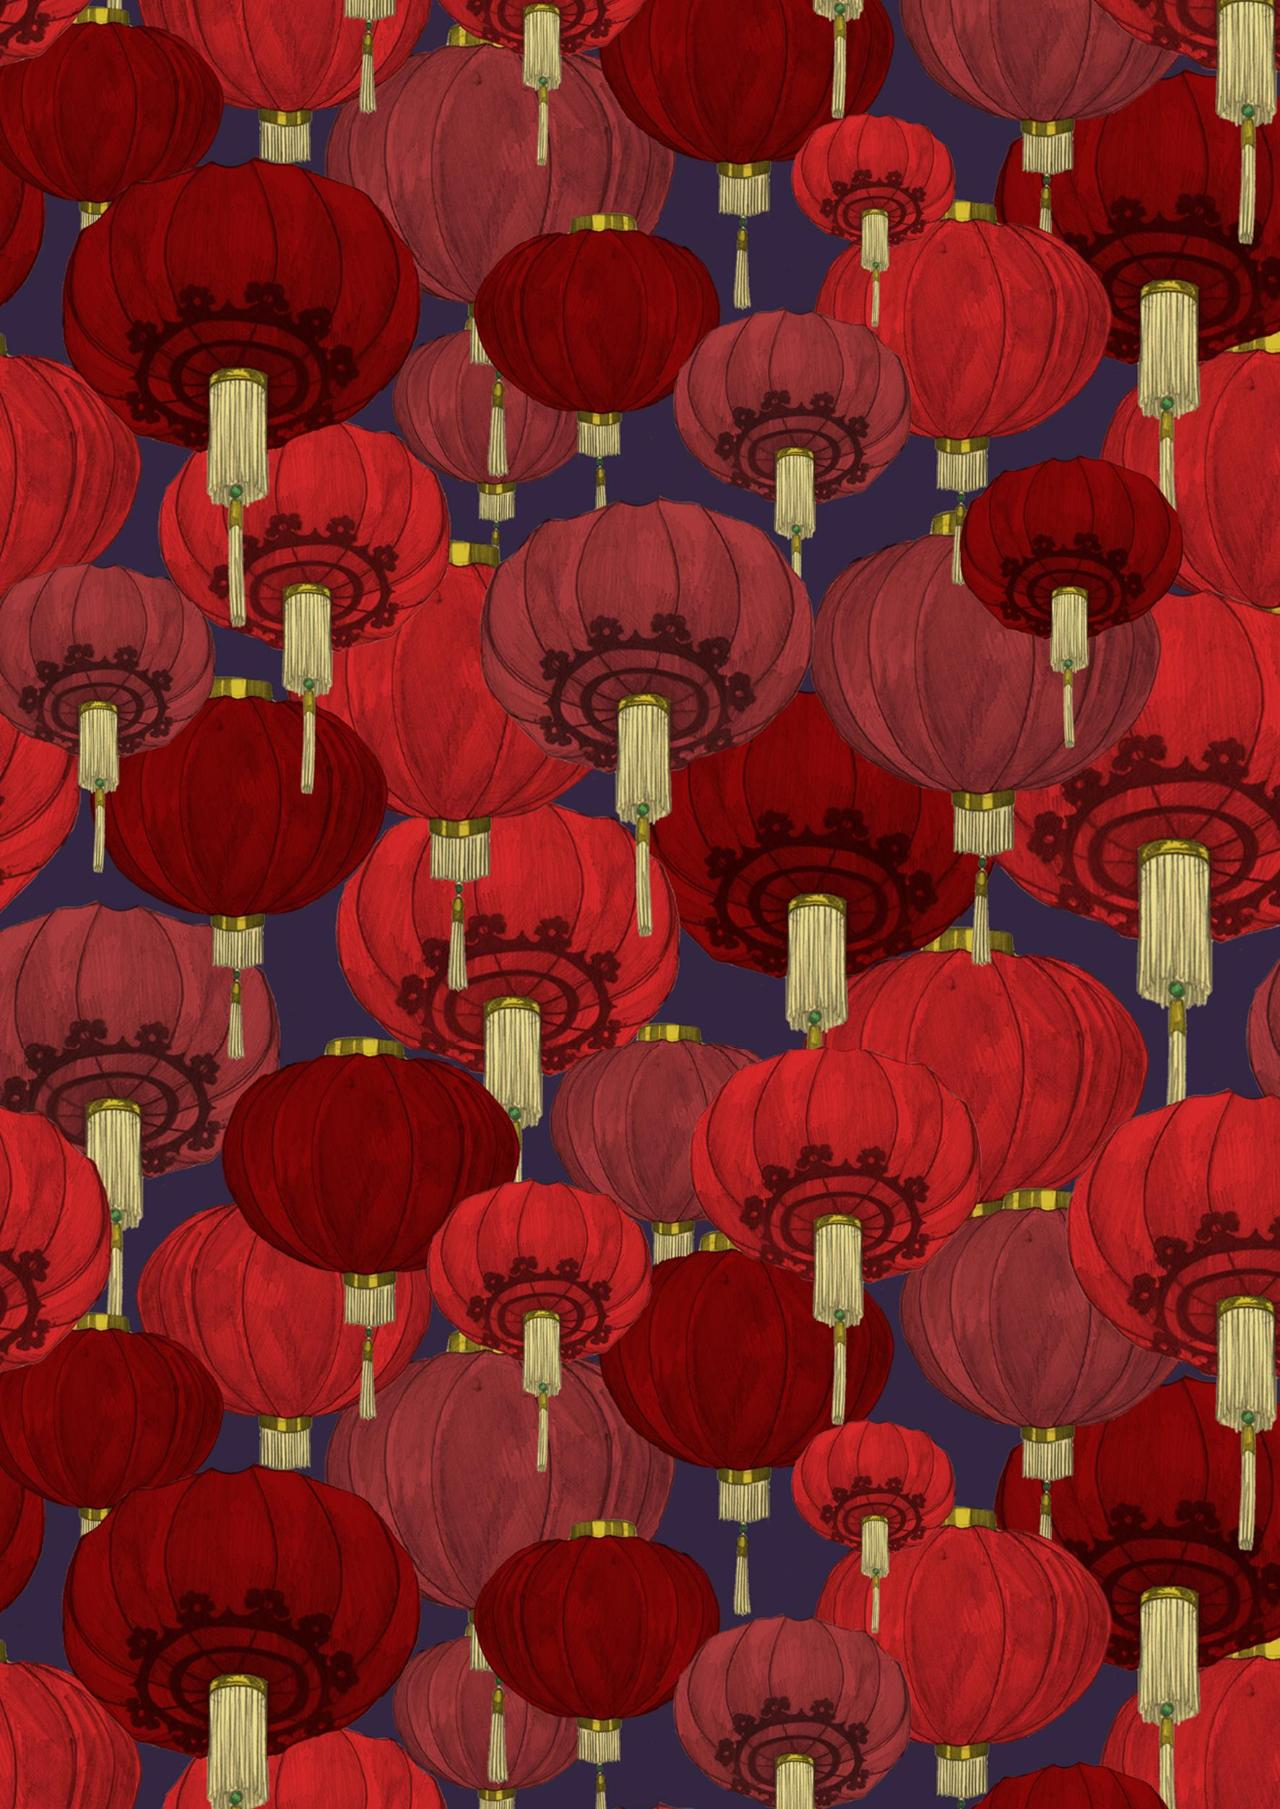 Round Chinese Lanterns in Red, purple and Pink